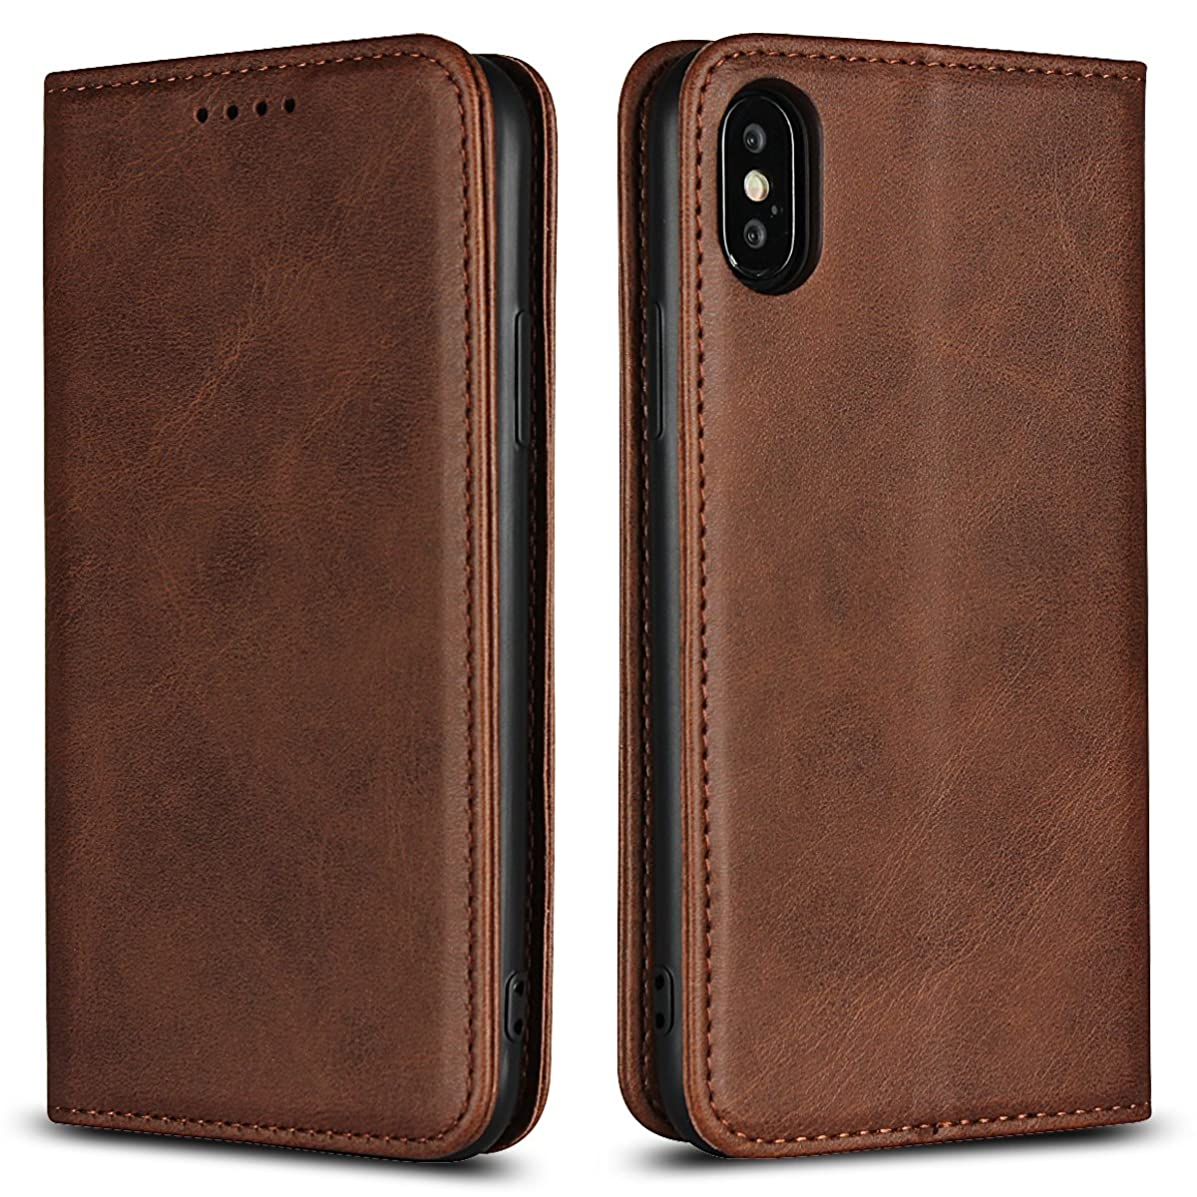 Scheam iPhone X Case Cover, Excellent Shell Anti-Scratch Wallet Case [Card Pocket] Protective Shell Armor Hybrid Shockproof Rubber Bumper Cover with Card Slot Holder - Brown